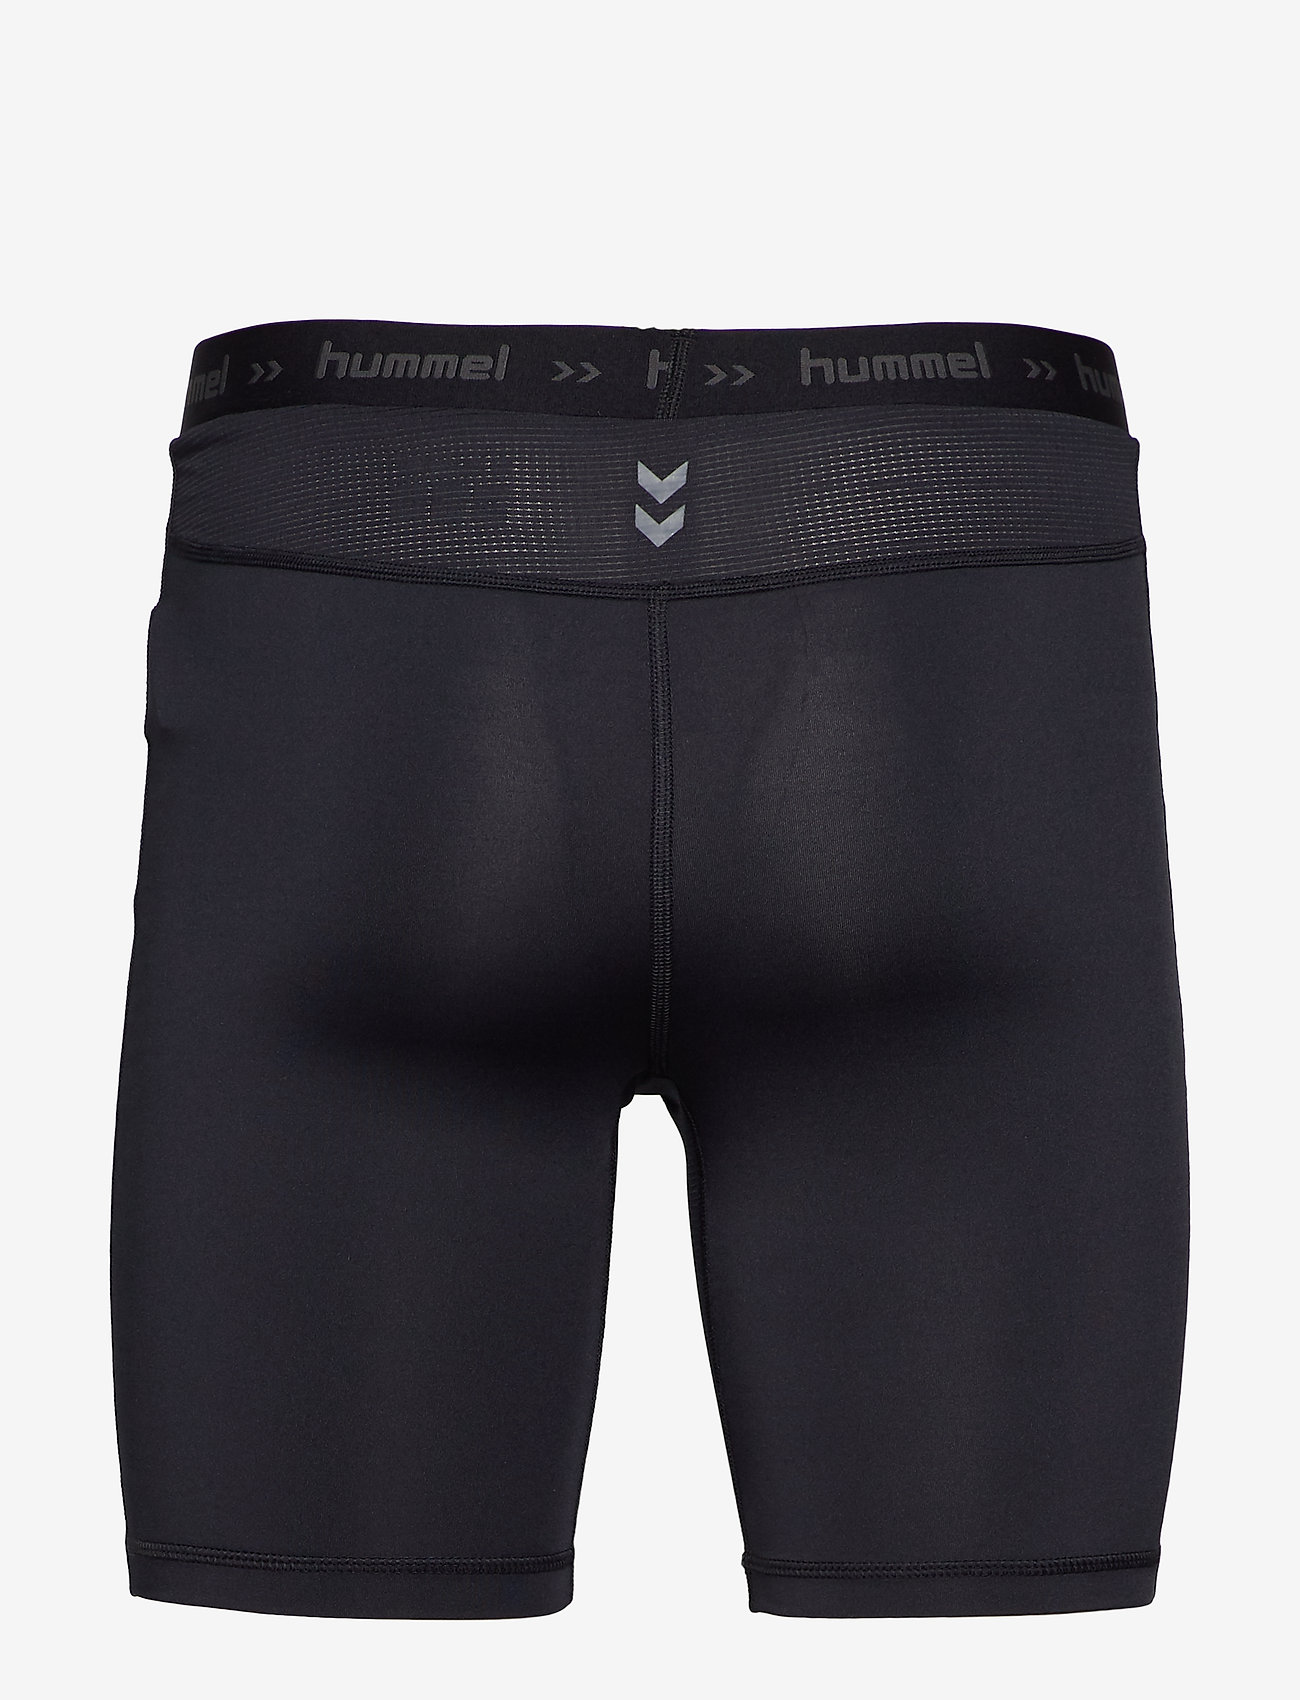 Hummel - HML FIRST PERFORMANCE TIGHT SHORTS - chaussures de course - black - 1